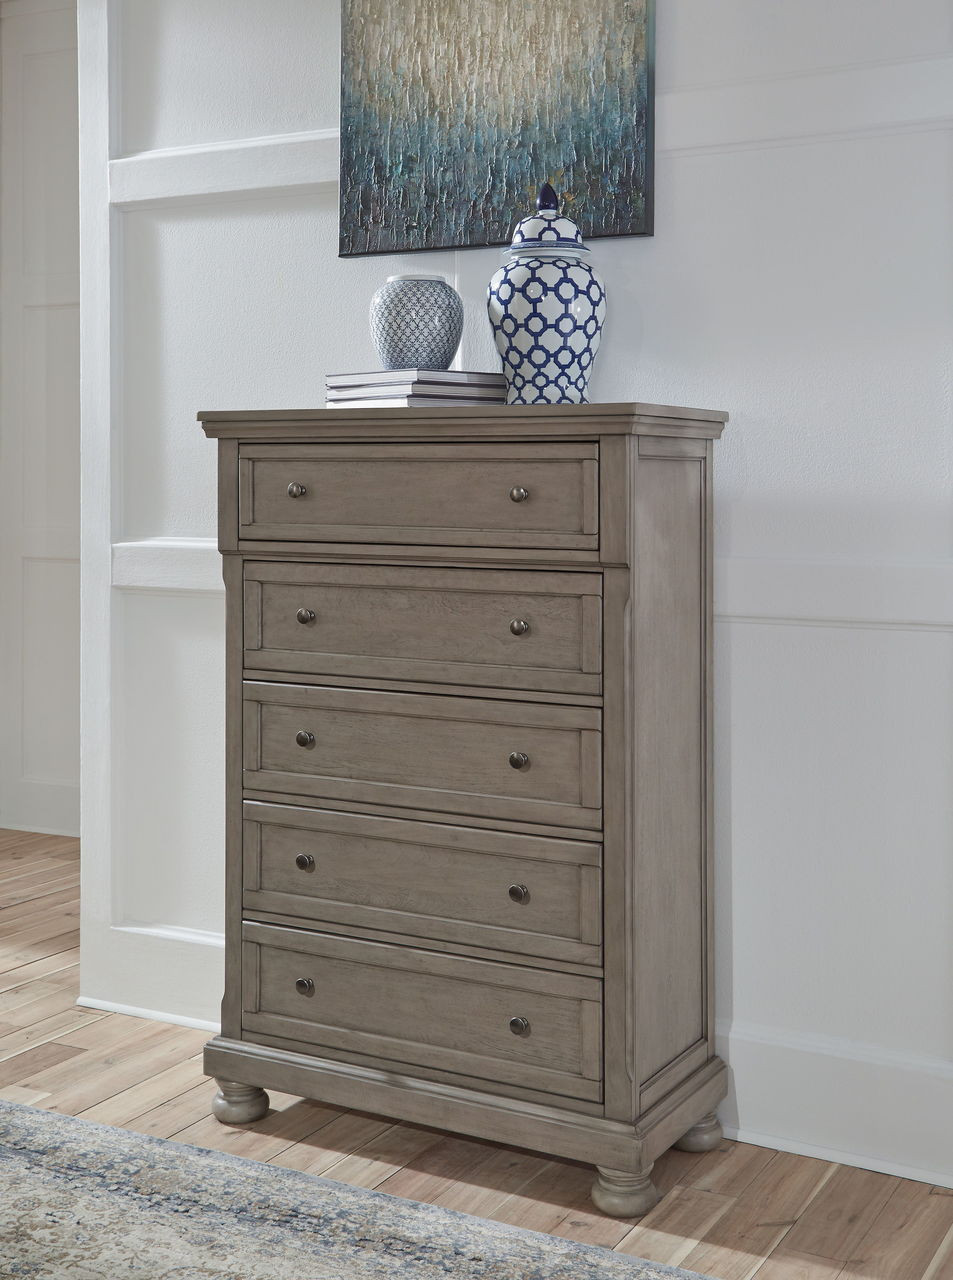 The Lettner Light Gray Five Drawer Chest Available At Gibson Mcdonald Serving Waycross Ga And Surrounding Areas